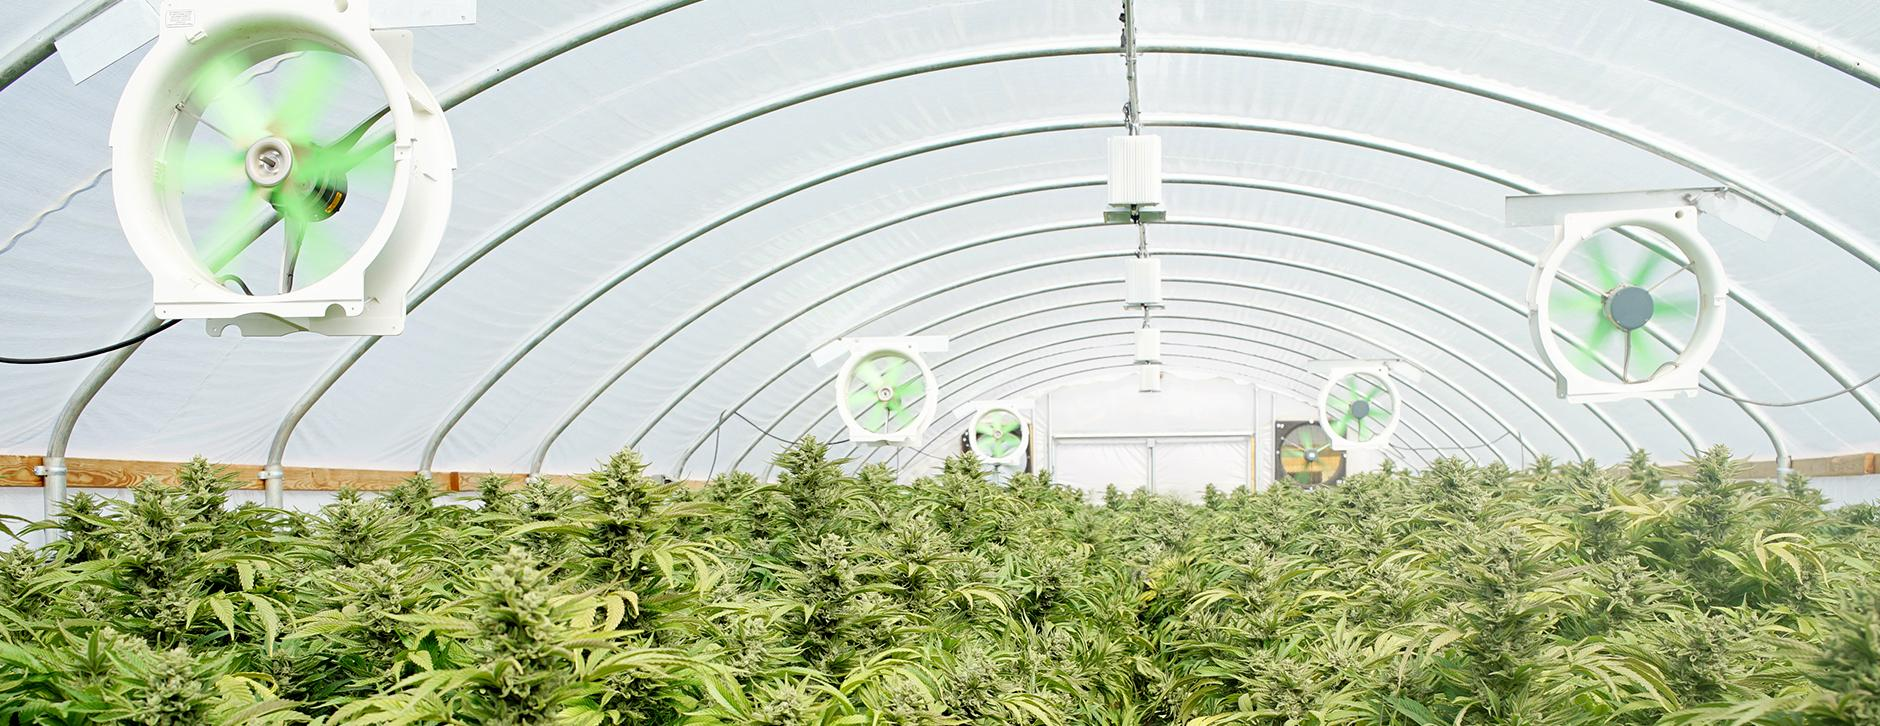 cannabis greenhouse fans for circulation variable speed fans